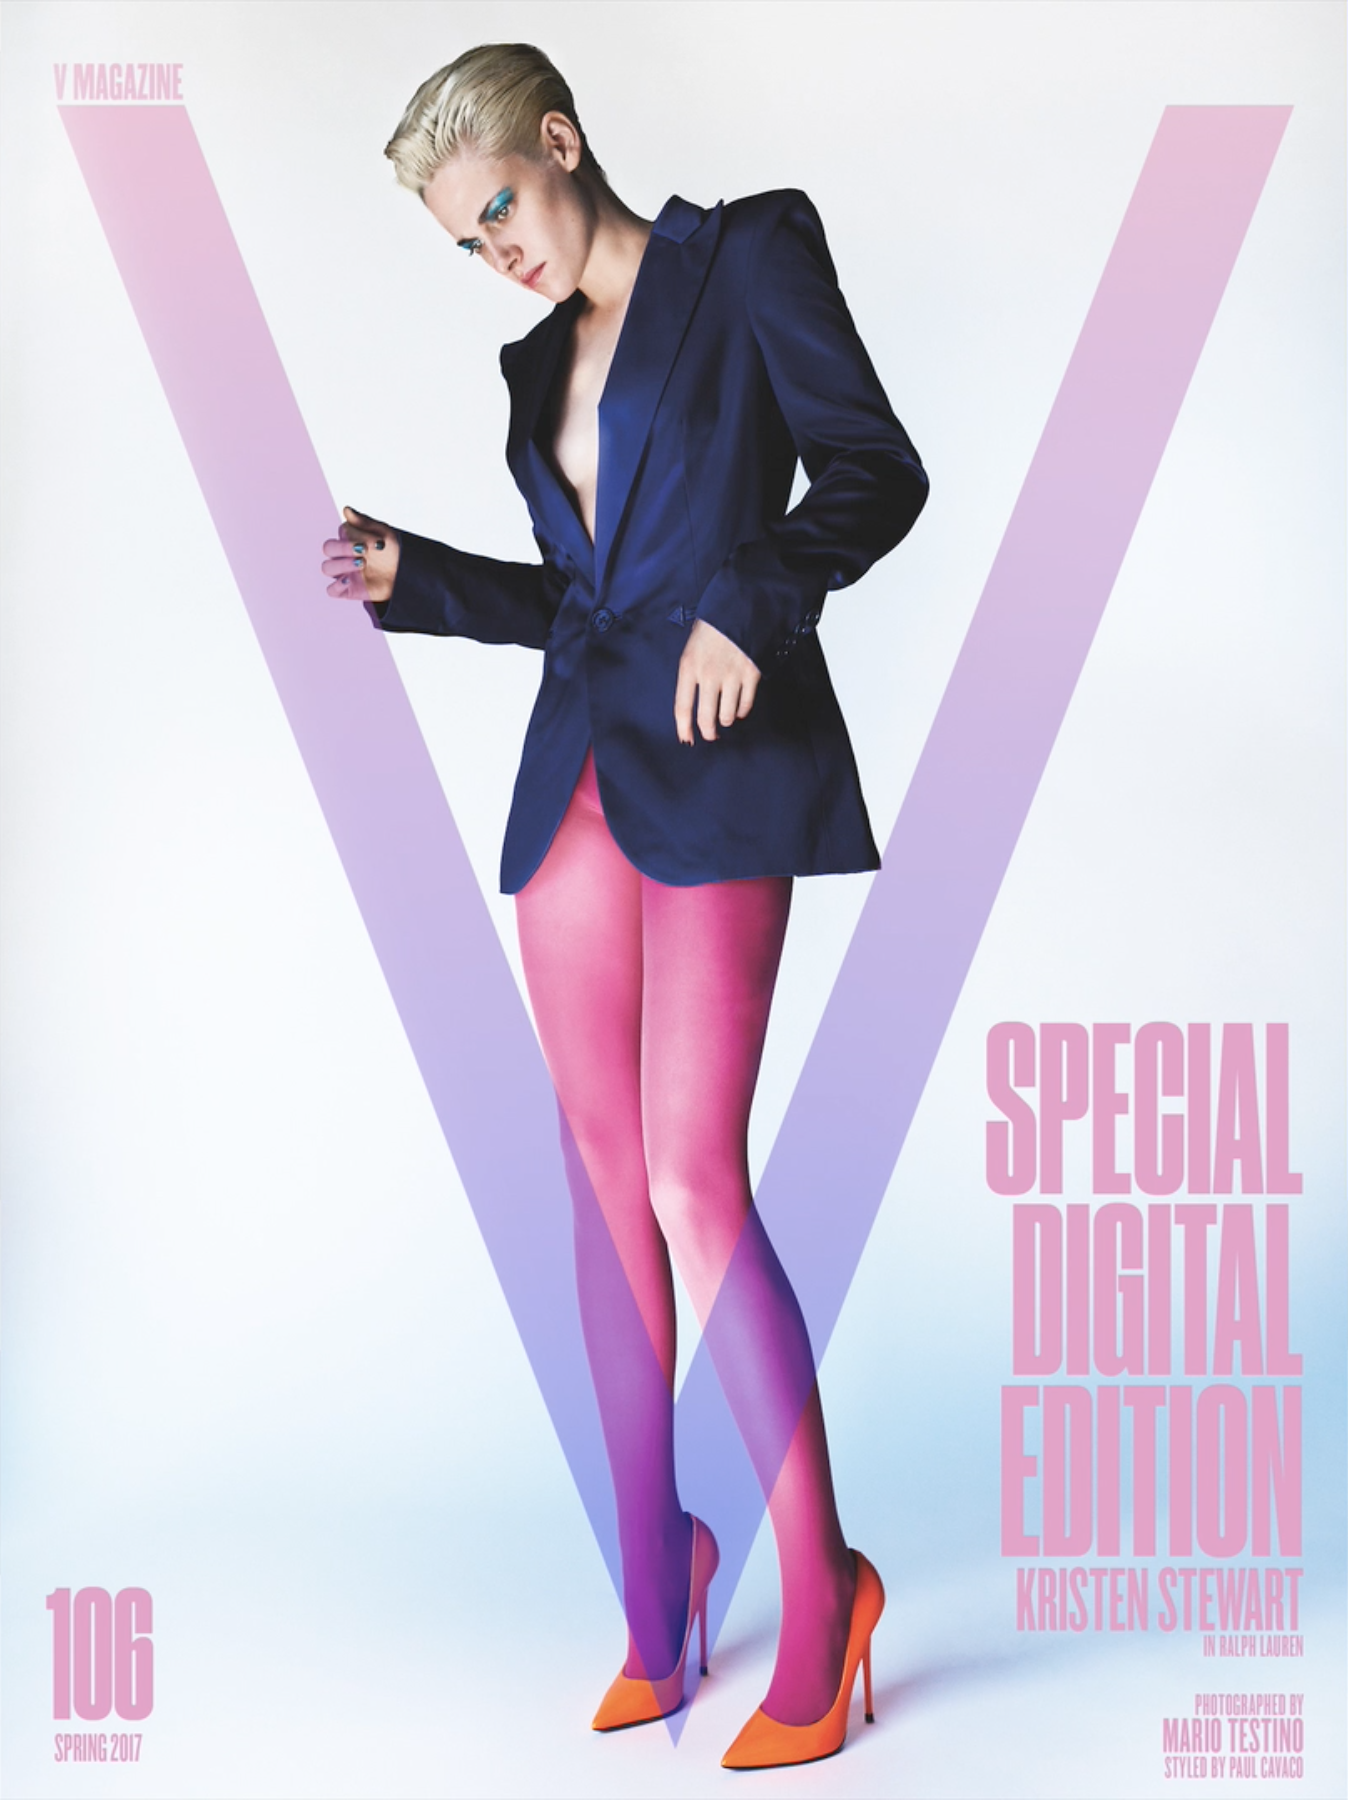 V106 SPECIAL DIGITAL EDITION COVER  Photo by Mario Testino  Styled by Paul Cavaco  Cover designed by Harvey Lee